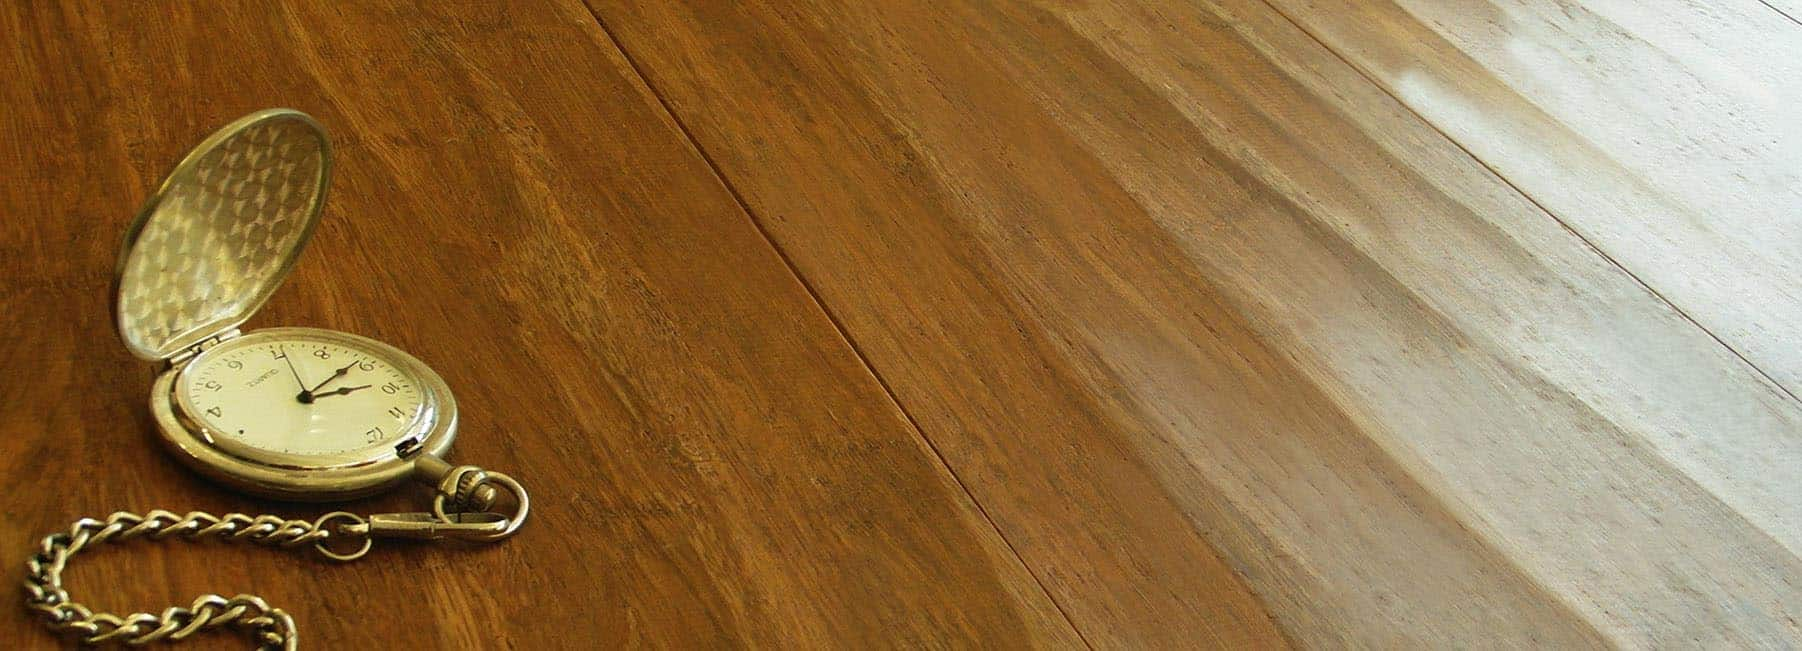 Parquet spessore minimo parquet spessore minimo with for Spessore parquet